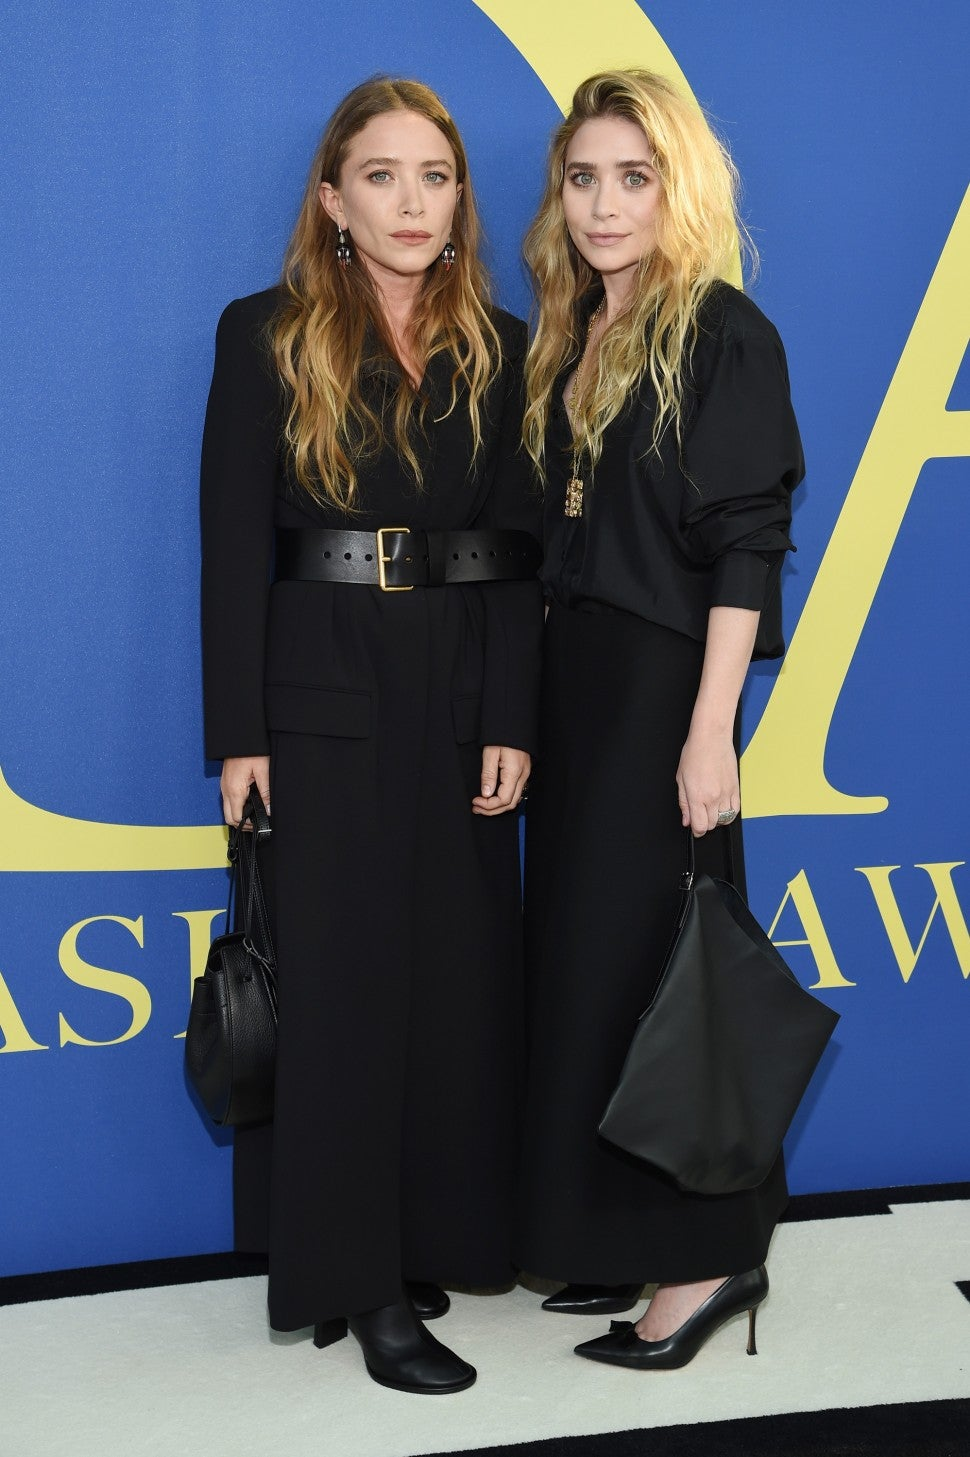 Mary-Kate and Ashley Olsen at 2018 CFDA Fashion Awards